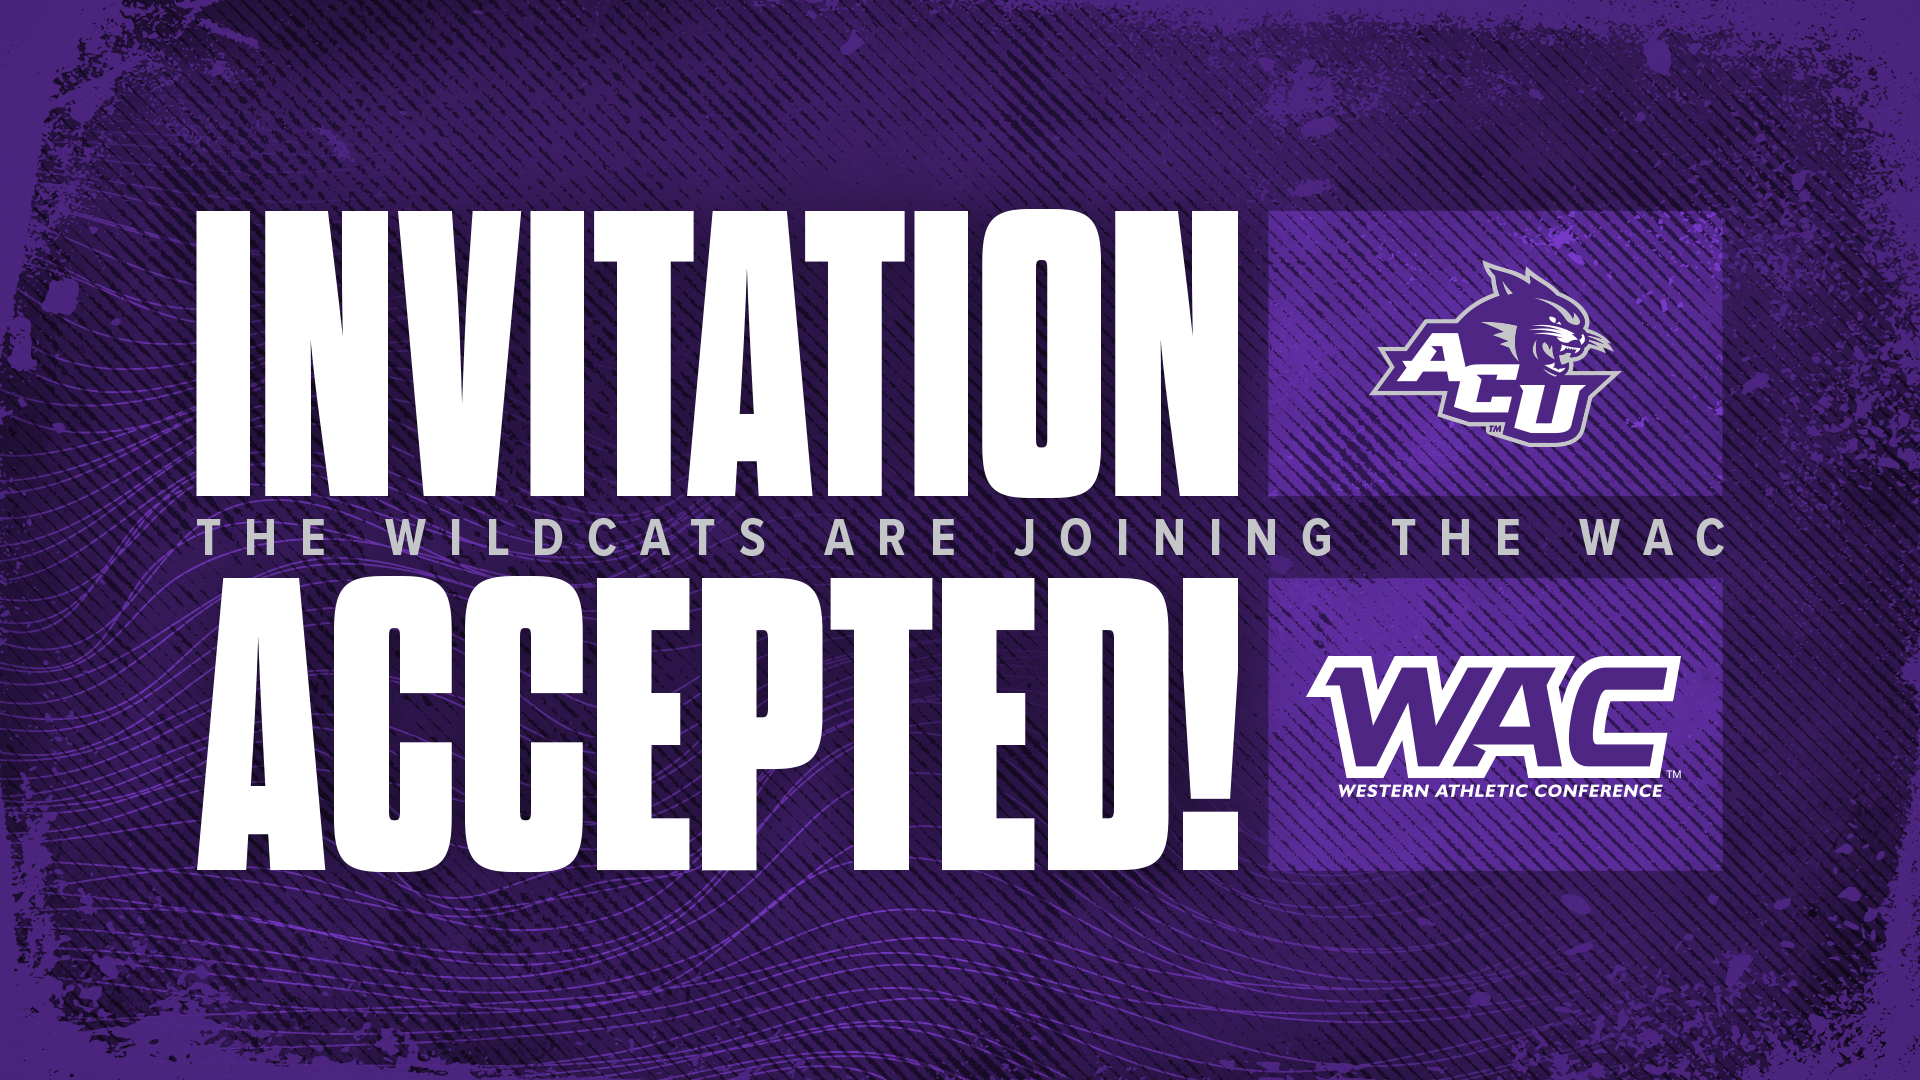 WAC-Announcement-NEW-acusports.com-Story-Graphic